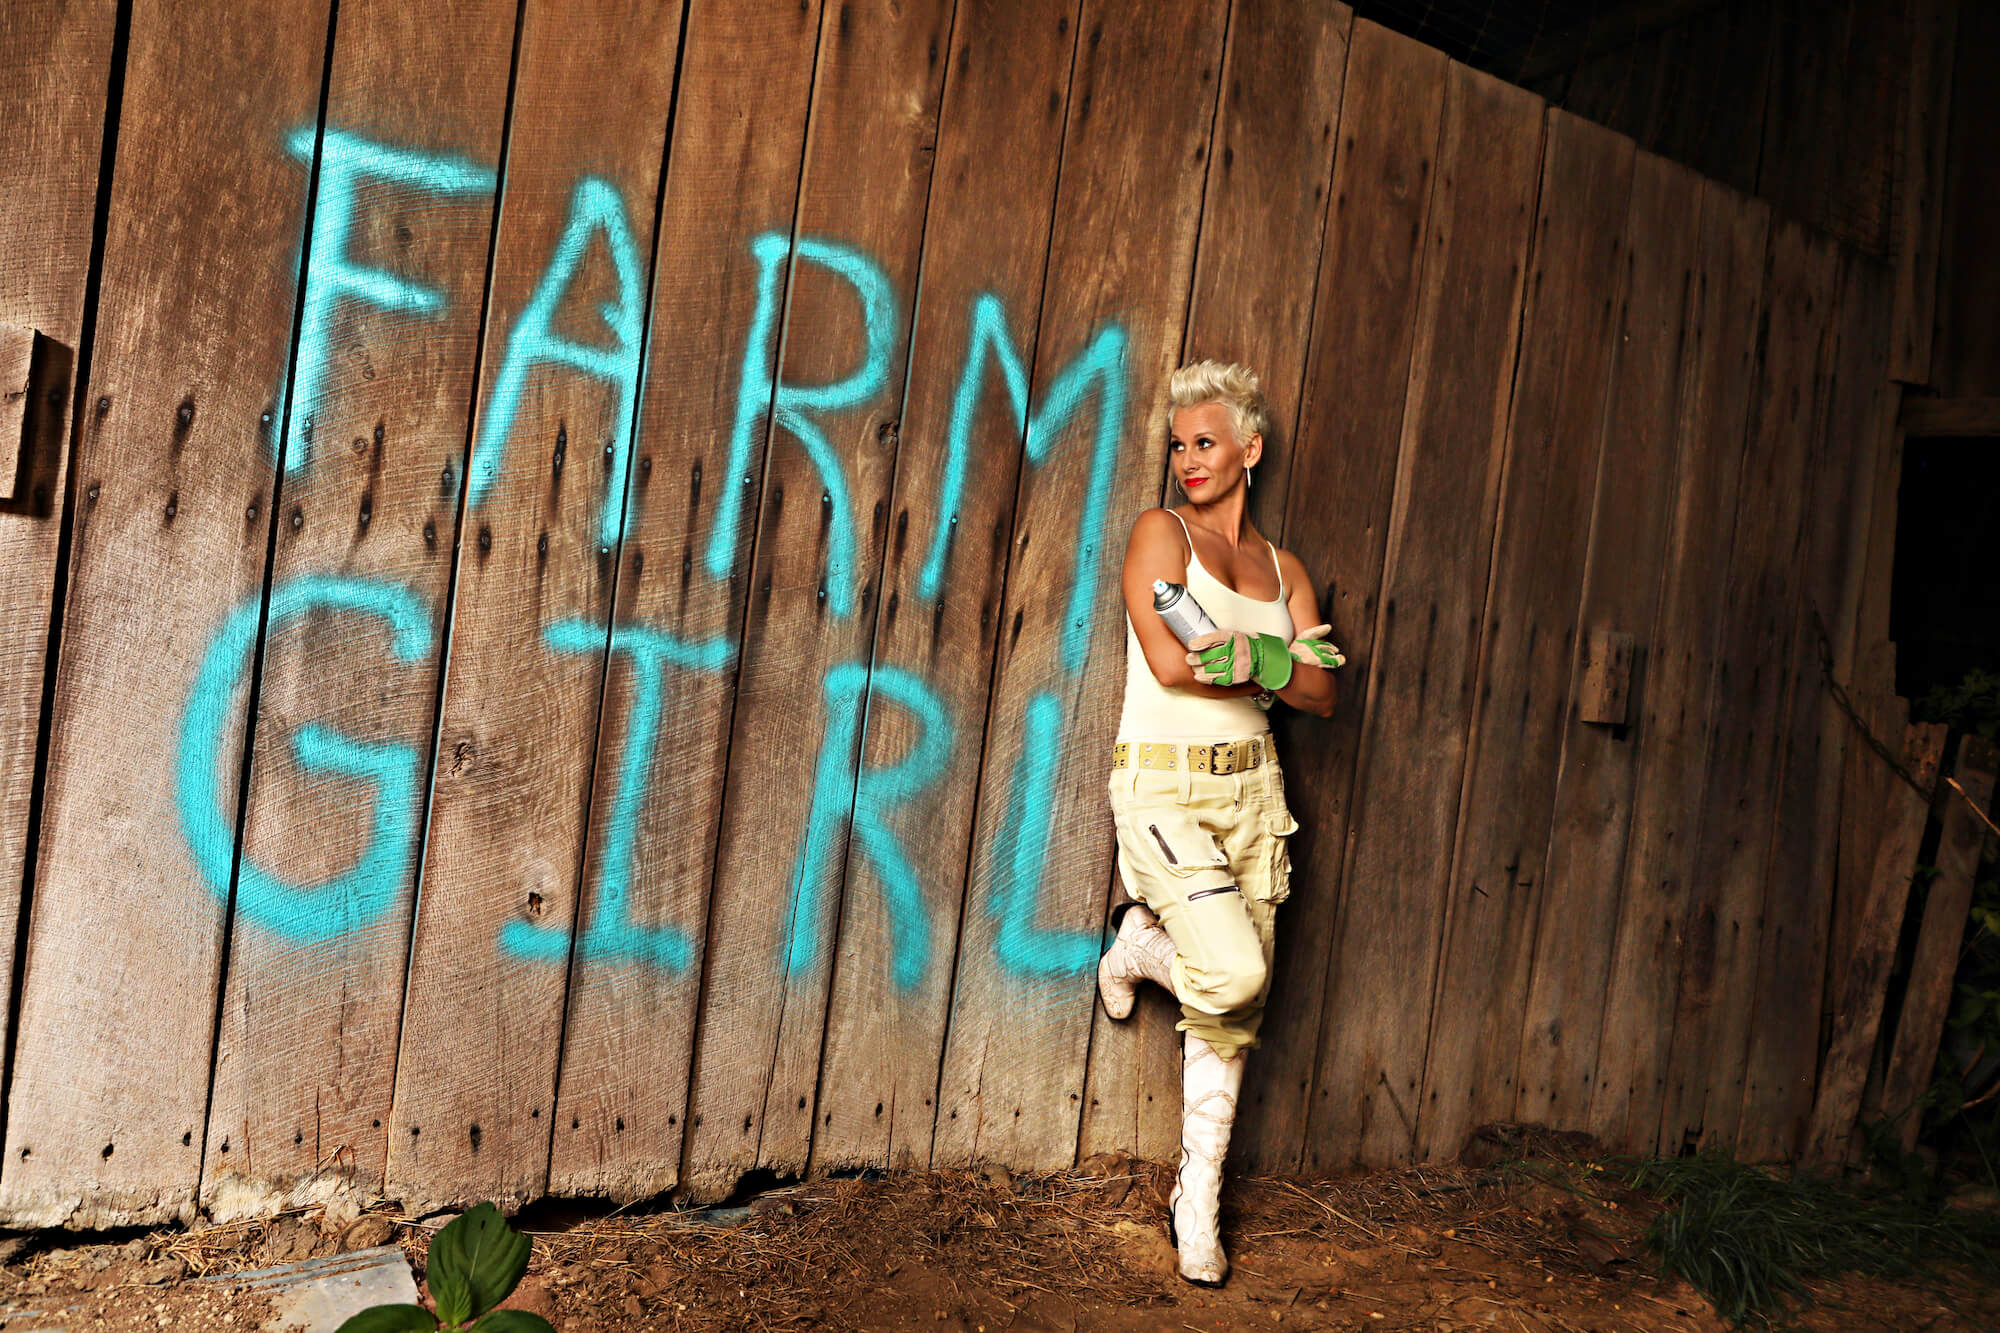 Farm Girl- Give THIS chick a hallelujah!